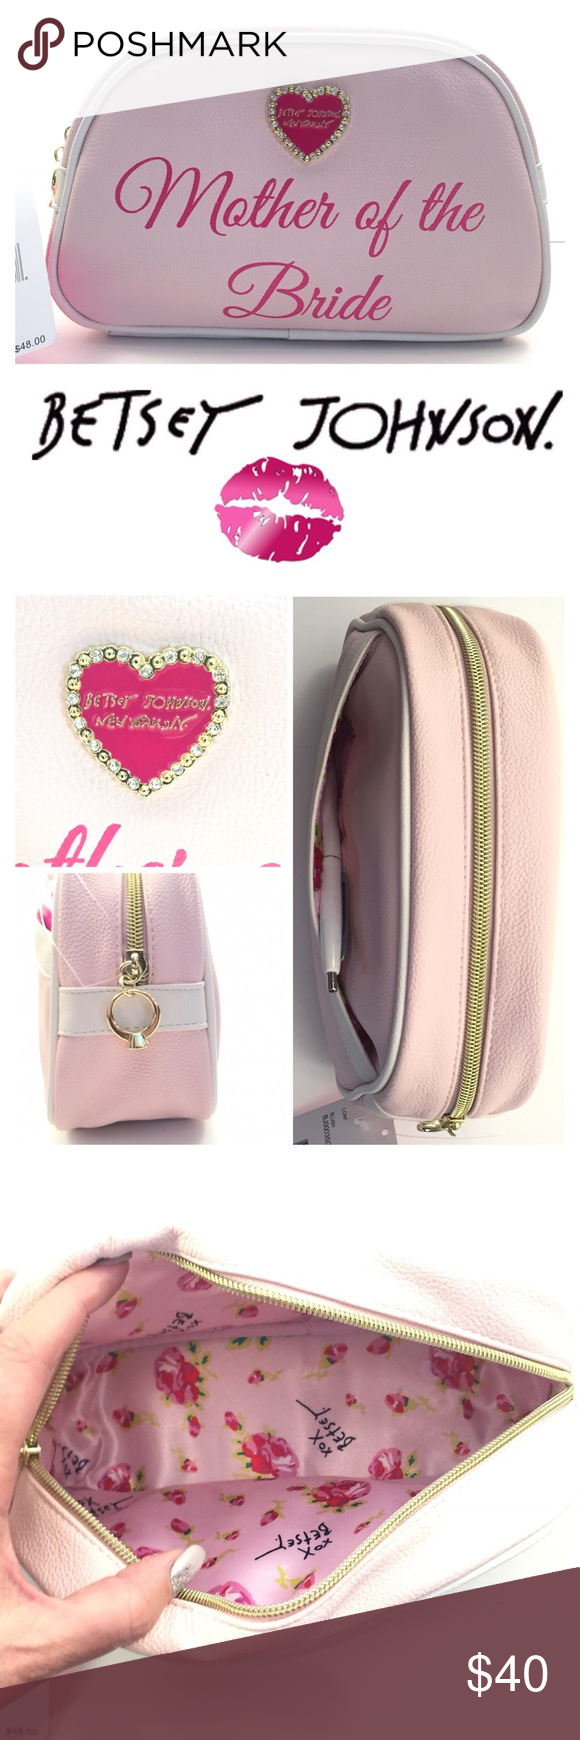 """MOTHER OF THE BRIDE COSMETIC BAG Something to remember her special day💕  -Faux leather makeup bag adorned with  -3D heart logo plaque rhinestone embellished -Rhinestone ring charm -Fully lined with signature BJ motif  -Exterior slip-in pocket -Zip closure -9""""Length x 5.5"""" Height x 3"""" Width  🛍 2+ BUNDLE=SAVE  ‼️NO TRADES--NO HOLDS  💯 Brand Authentic  ✈️ Ship Same Day--Purchase By 2PM PST  🖲 USE BLUE OFFER BUTTON TO NEGOTIATE   ✔️ Ask Questions Not Answered In Description--Want You Yo Be…"""